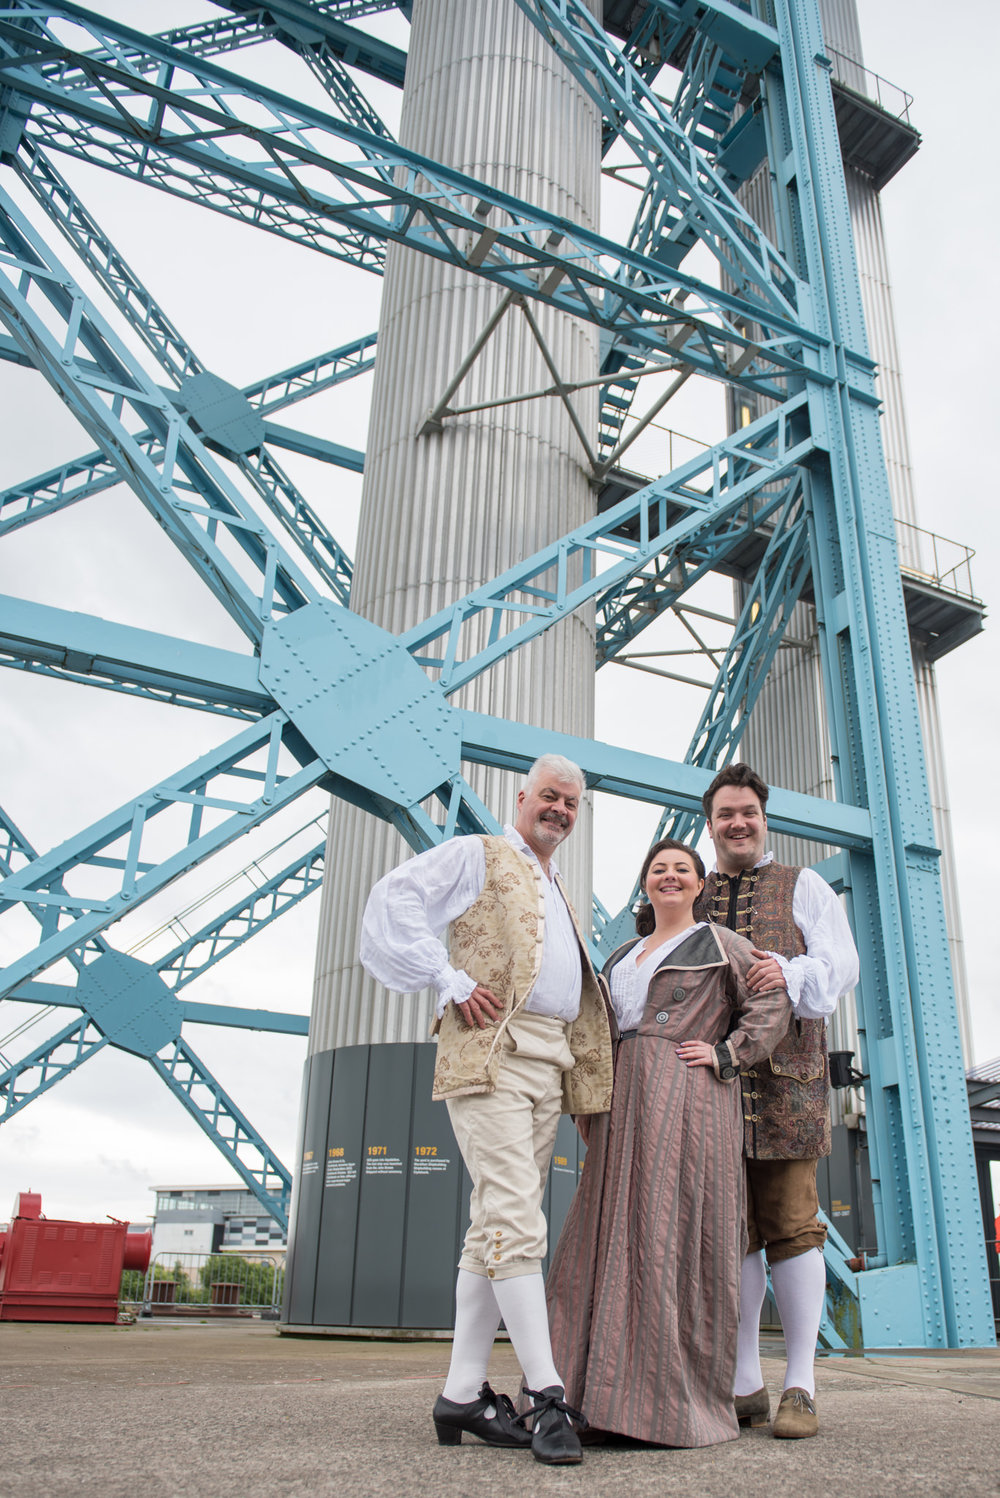 Scottish Opera - Pop-up at Titan Crane - Clydebank - 20 June 2016 © Julie Broadfoot/Photography by Juliebee